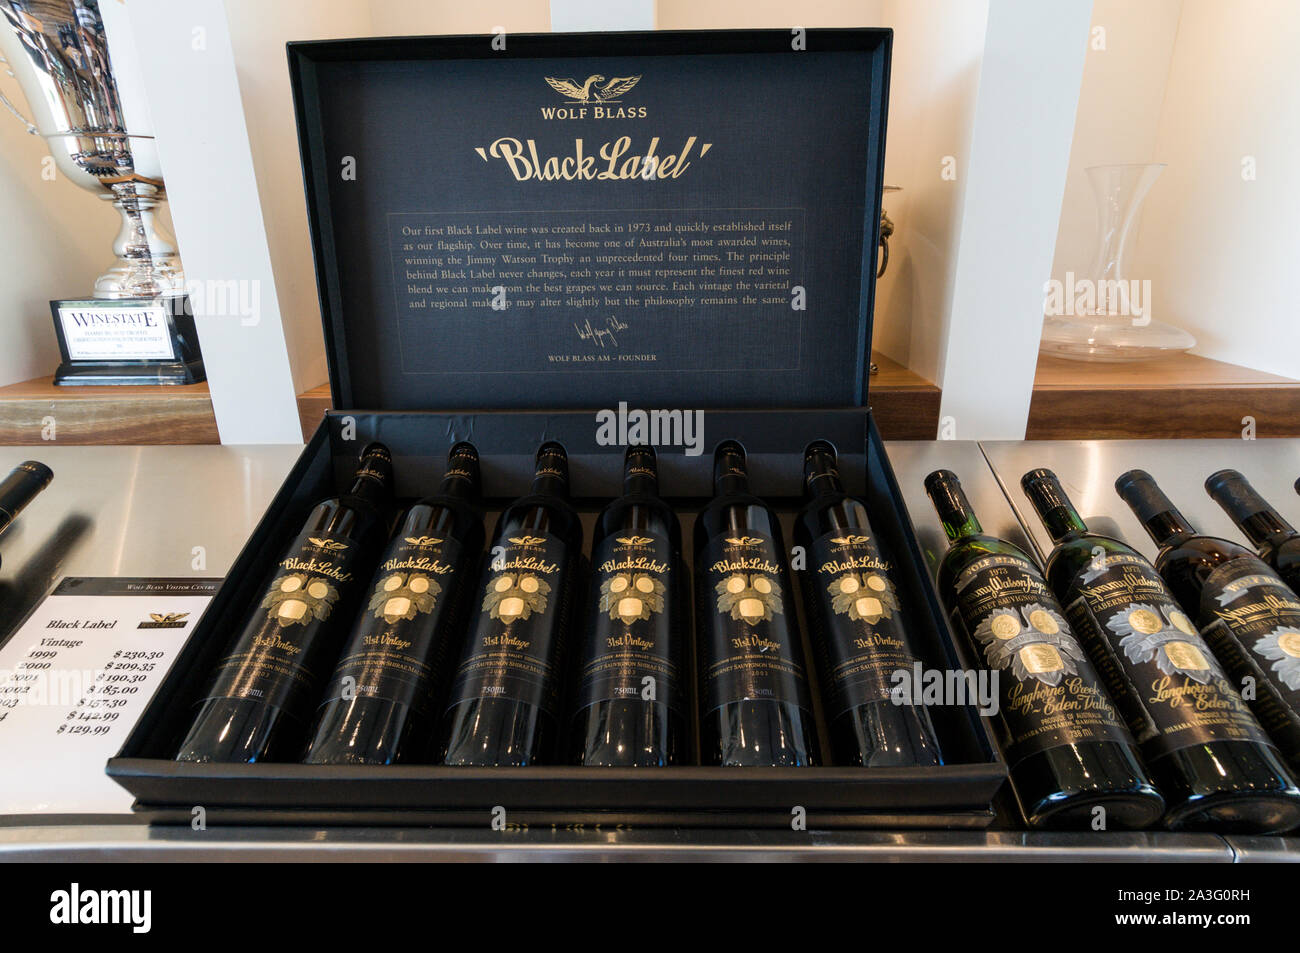 A case of six bottles of Wolf Blass Black Label Museum Collection from each year 2000-2005 with a price tag of Aus $ 678.00, on sale at the Wolf Blass Stock Photo